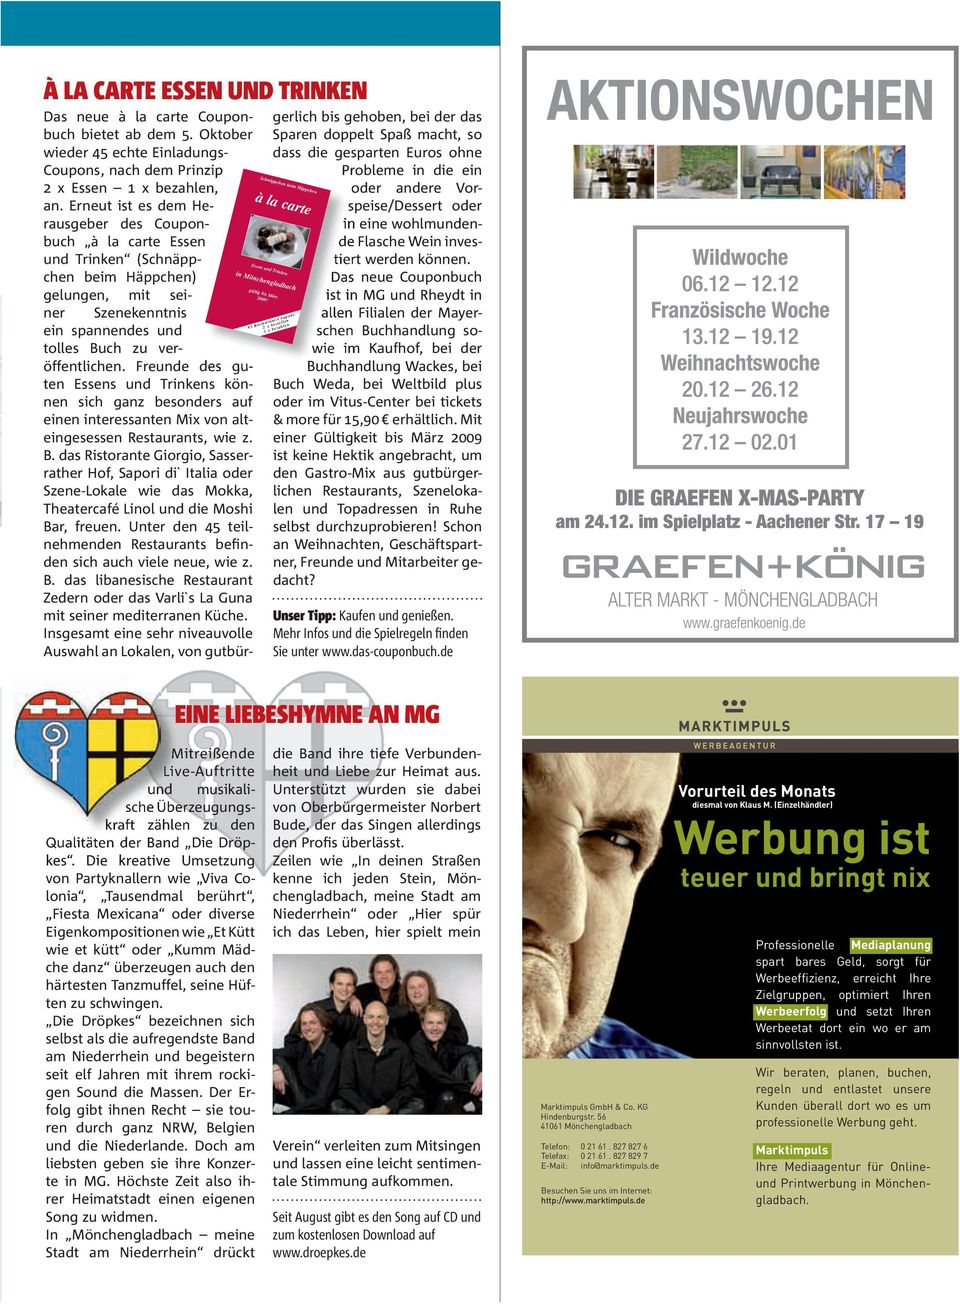 and dezember 2007 januar 2008 unbezahlbar pdf. Black Bedroom Furniture Sets. Home Design Ideas